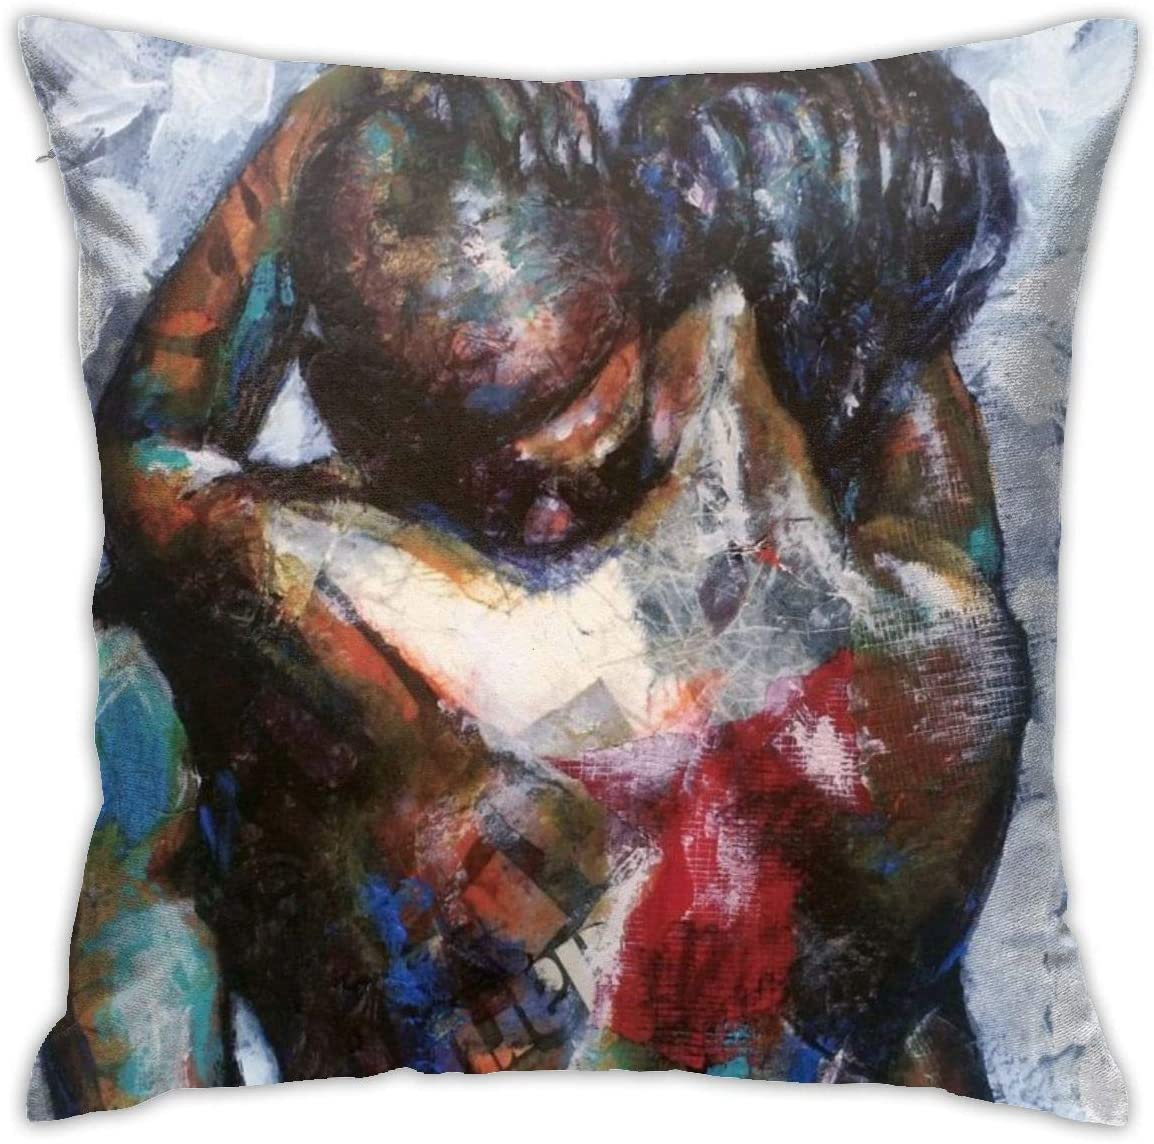 Gievszhe African Black Couple Lover Throw Pillow Covers Home Decor Zipper Cushion Pillow Case Square 18x18 Inches